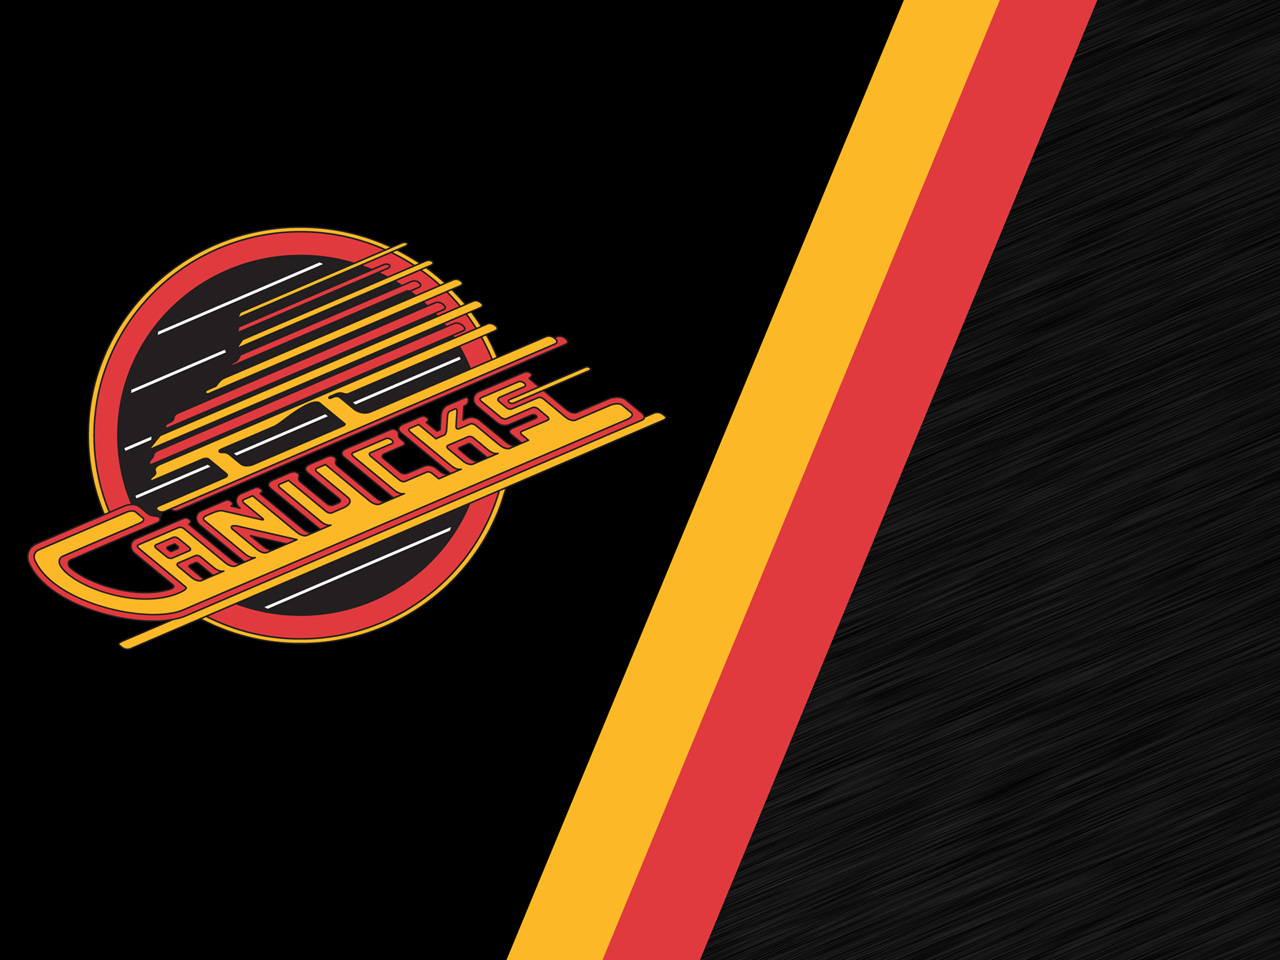 [66+] Vancouver Canucks Logo Wallpaper On WallpaperSafari